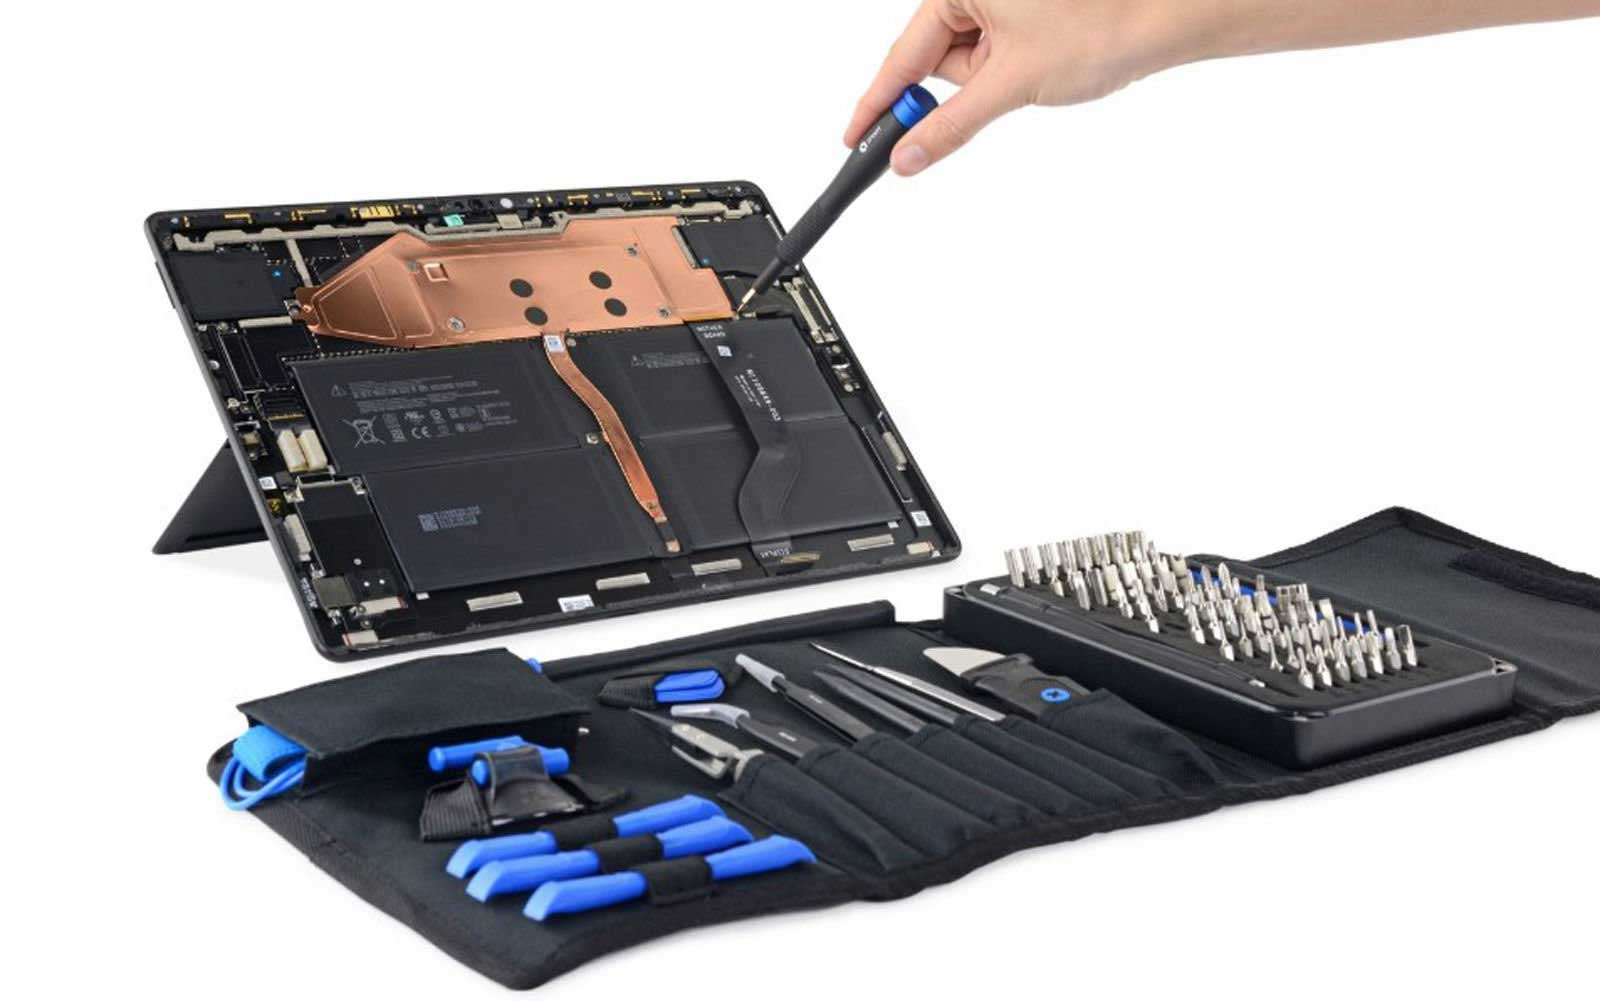 IFixit Teardown Shows Surface Pro X to be Very Repairable